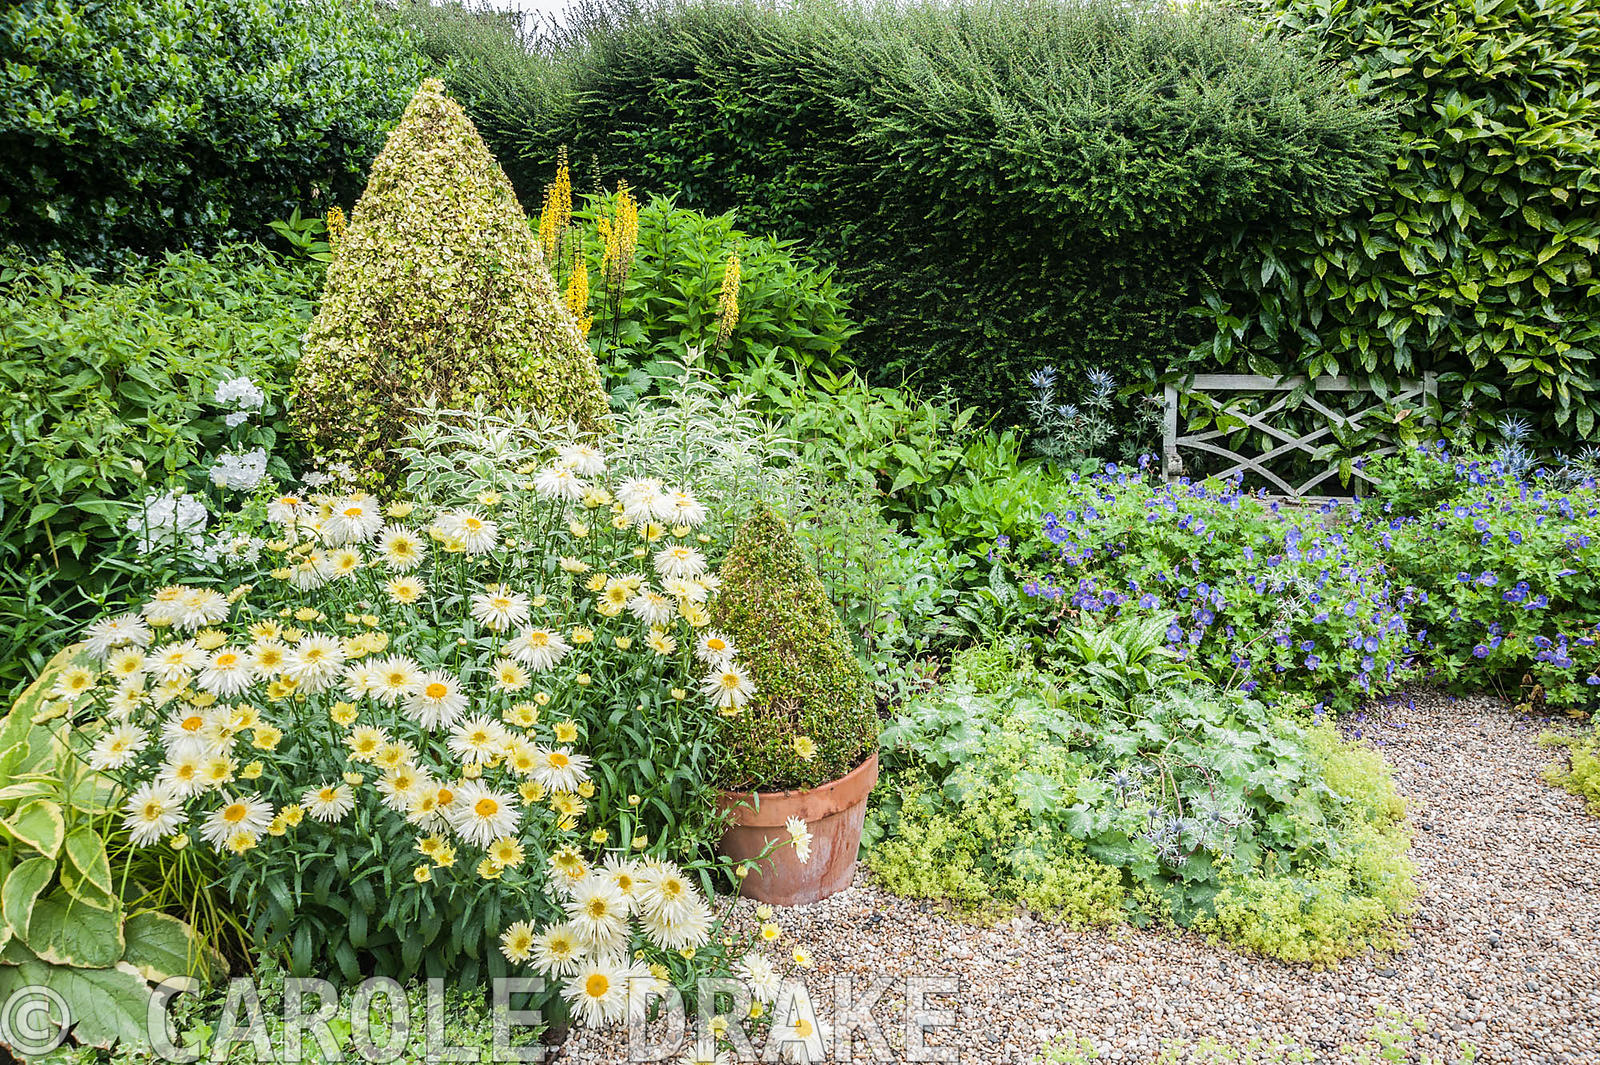 The Vean Garden is predominantly white, blue and gold, with clipped box and golden privet surrounded by lush perennials such ...